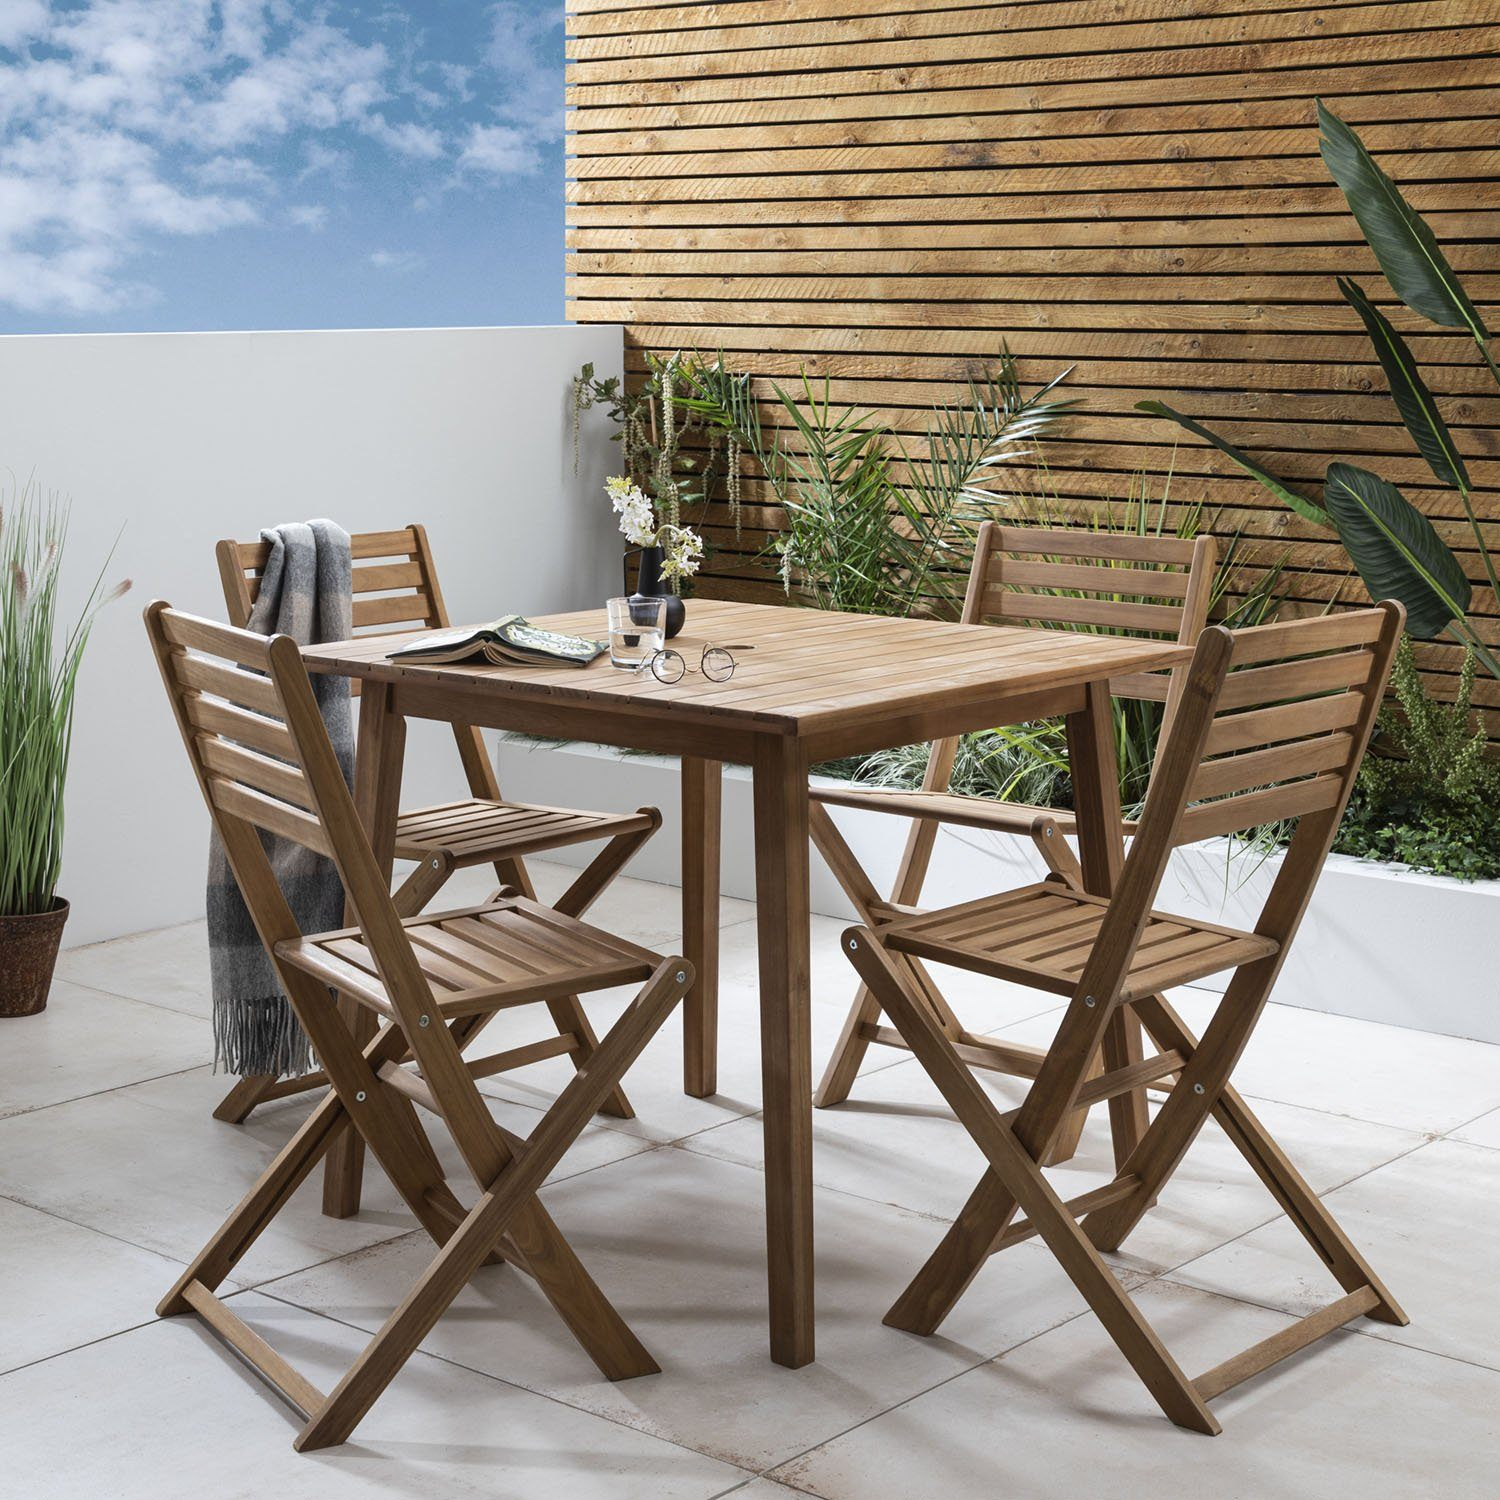 Ackley outdoor dining set – solid acacia wood – 4 seater - Laura James